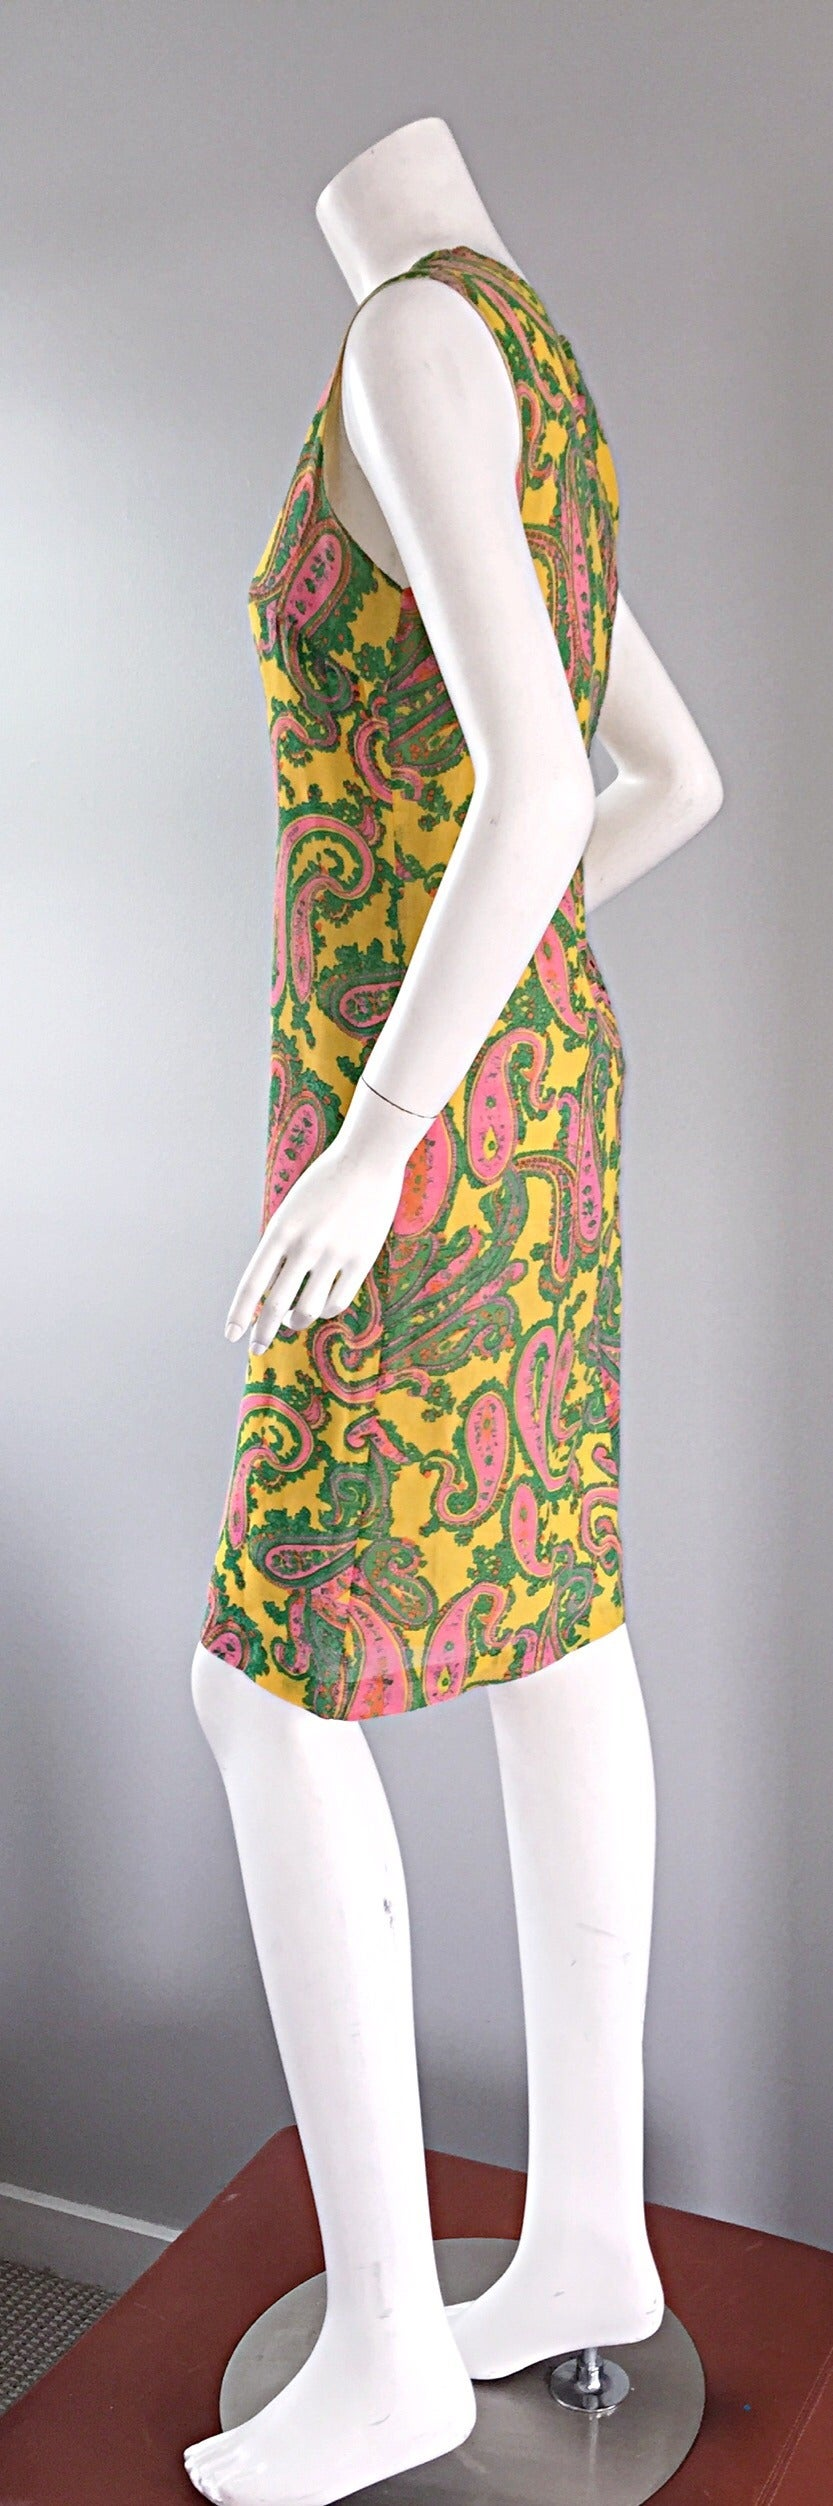 1960s 60s Yellow + Pink + Green Paisley Mod Retro Vintage Cotton Shift Dress For Sale 1